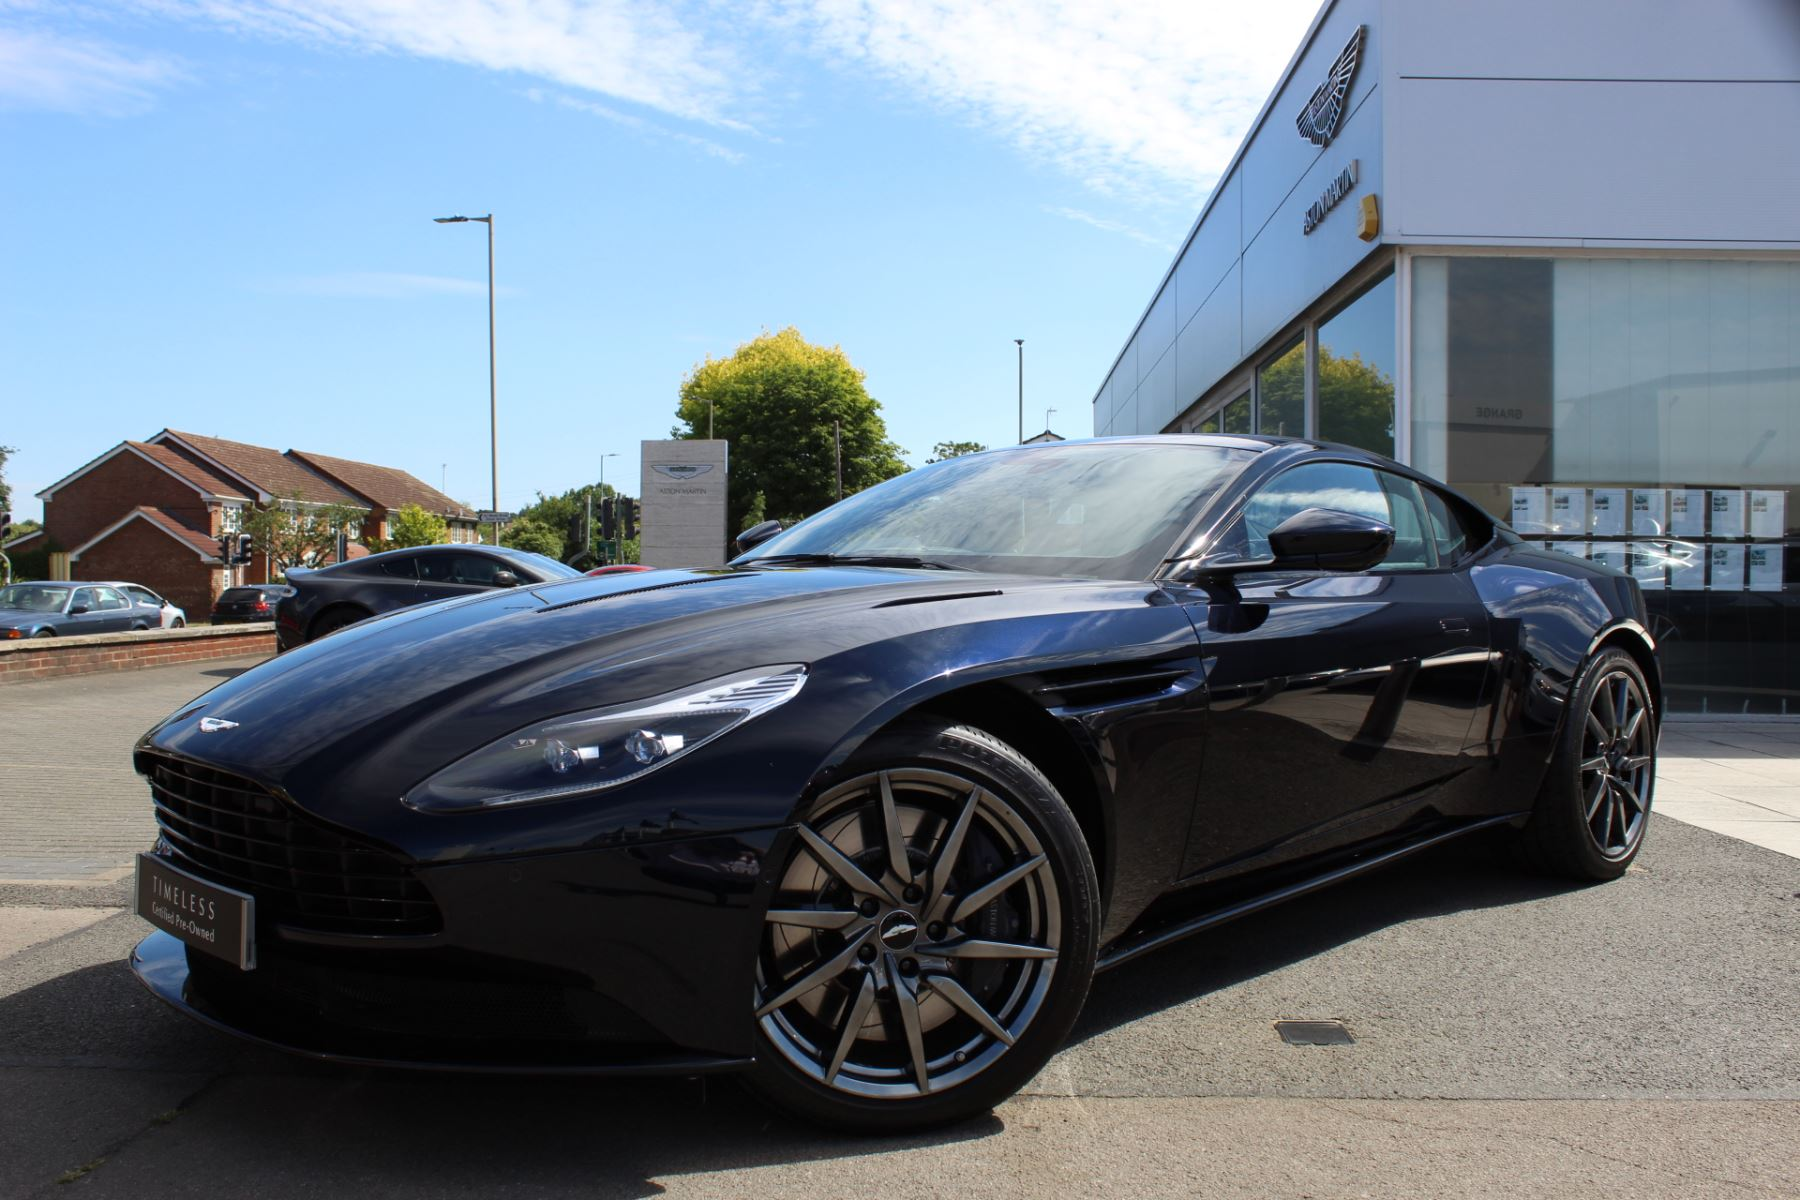 Aston Martin DB11 V12 2dr Touchtronic image 1